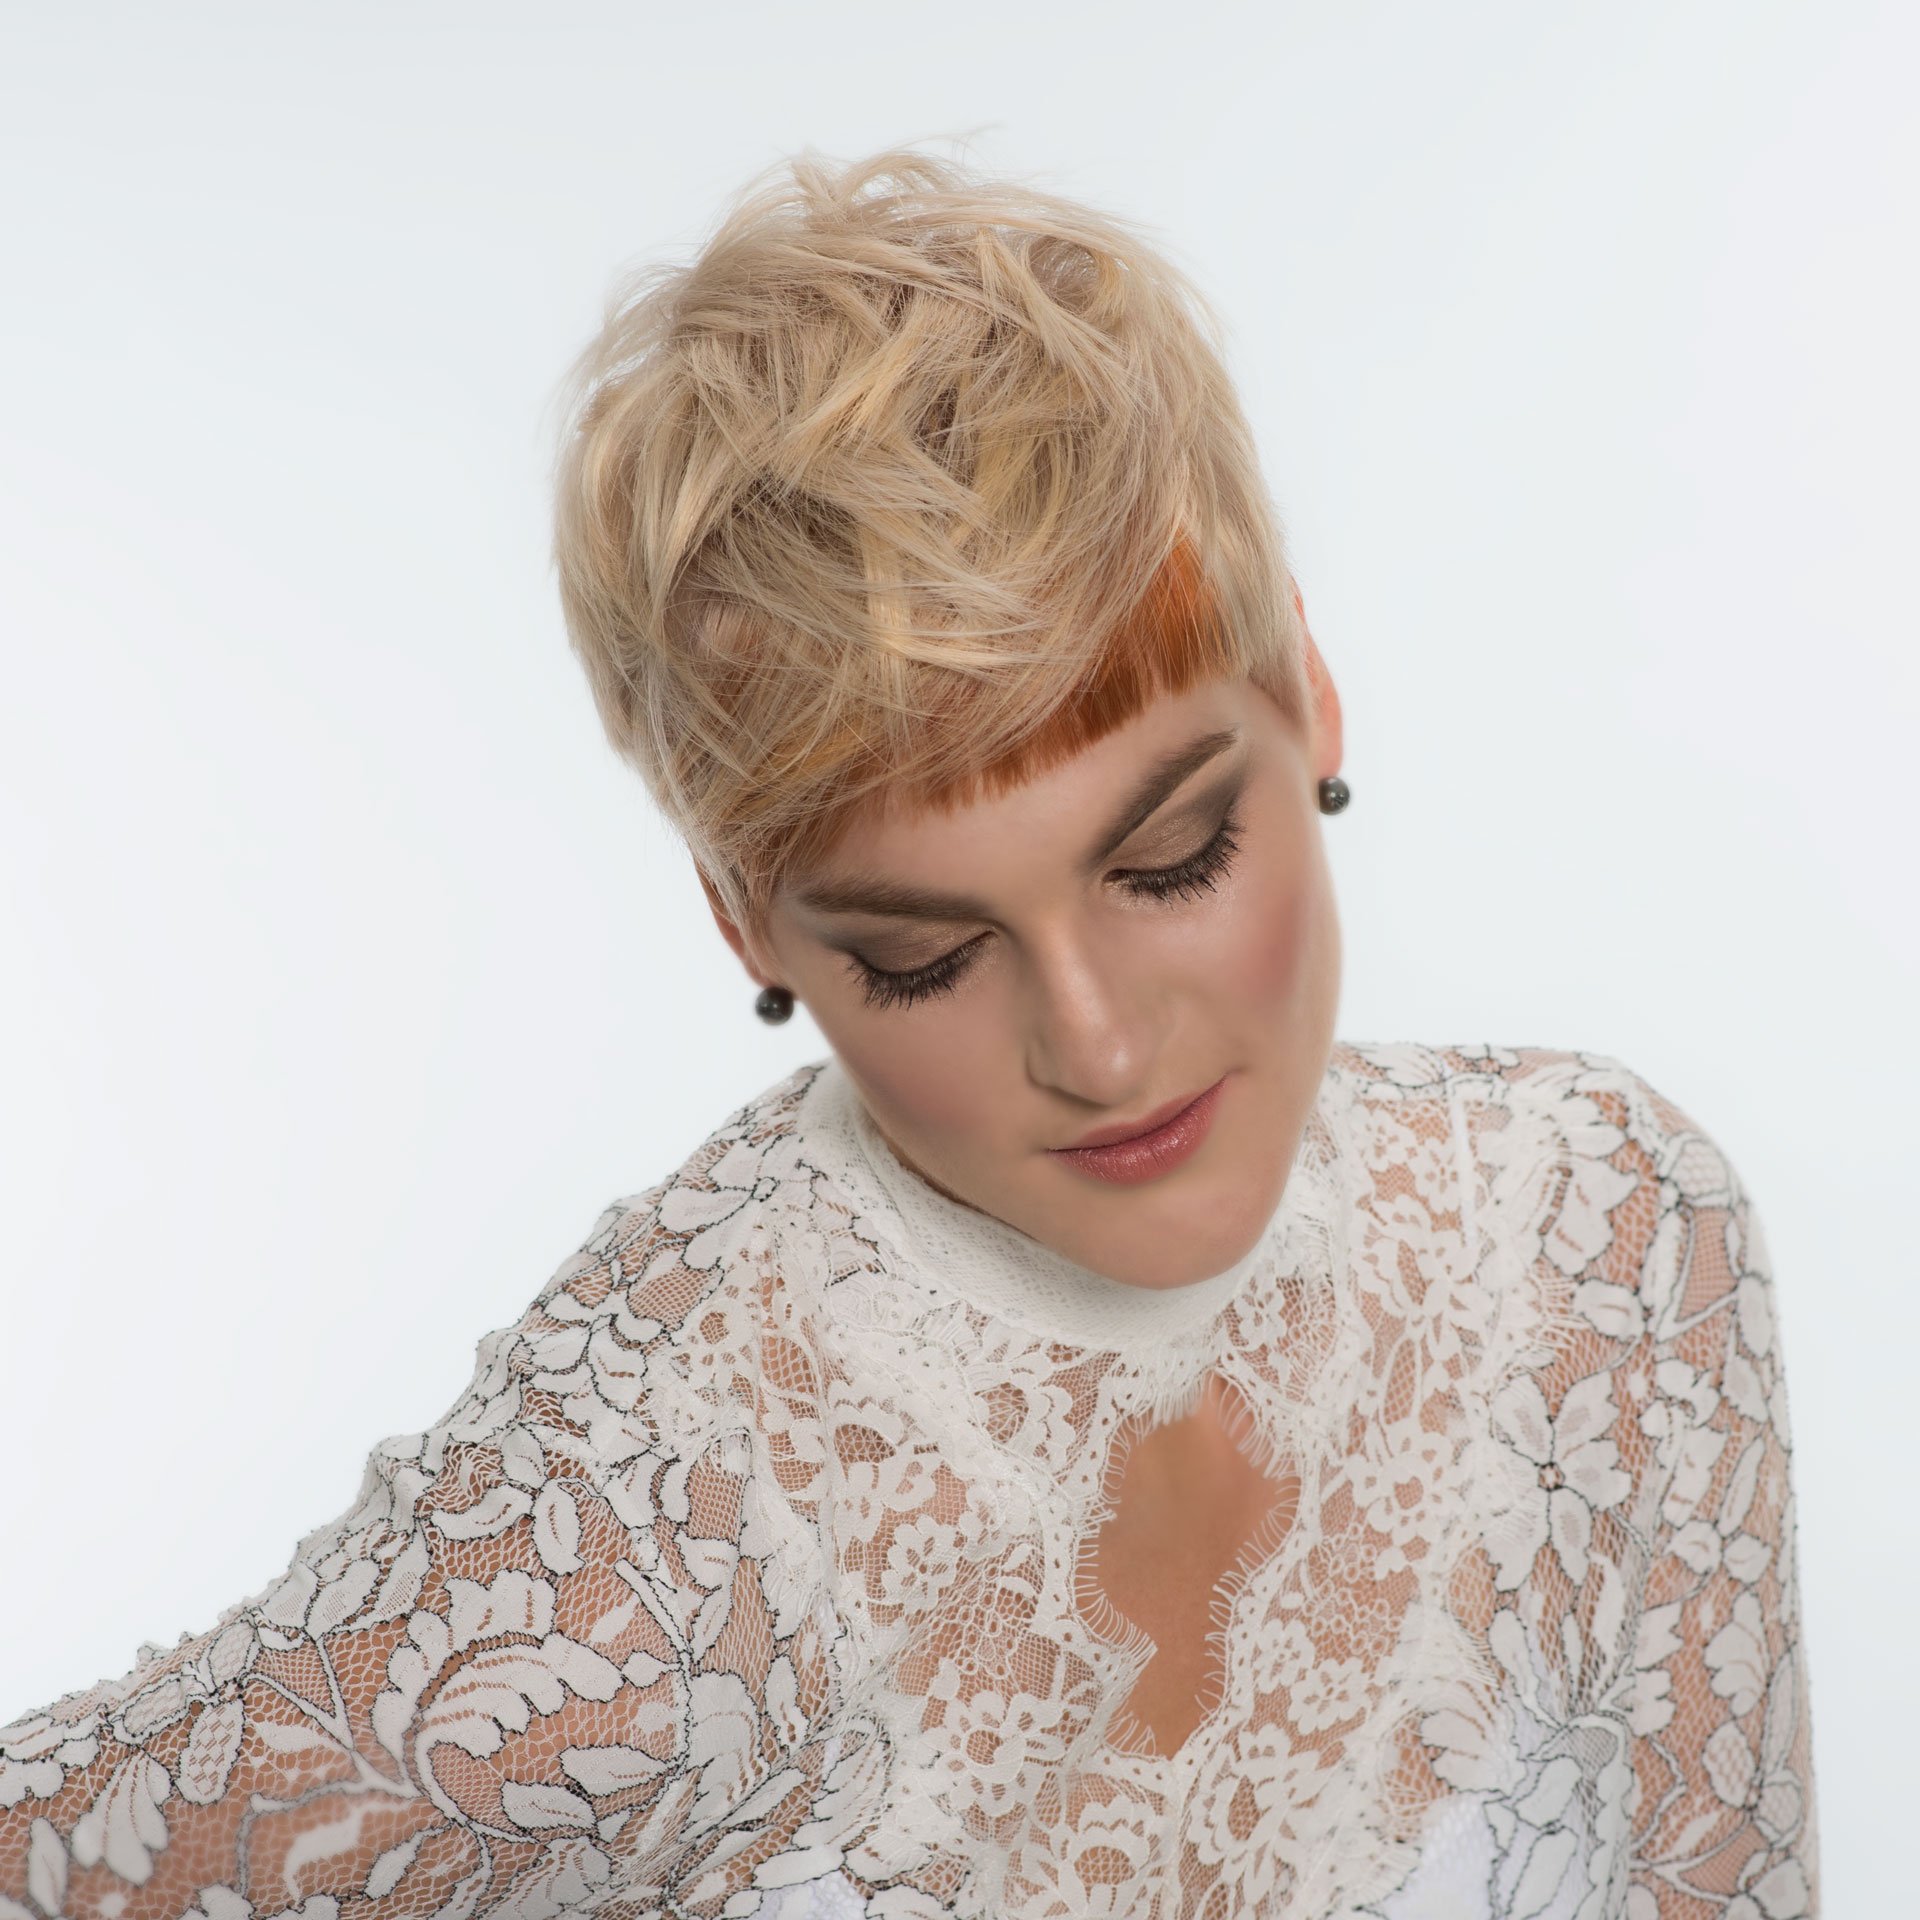 Pixie Haircut Short Hairstyle Plano Frisco Dallas Best Hair Salon